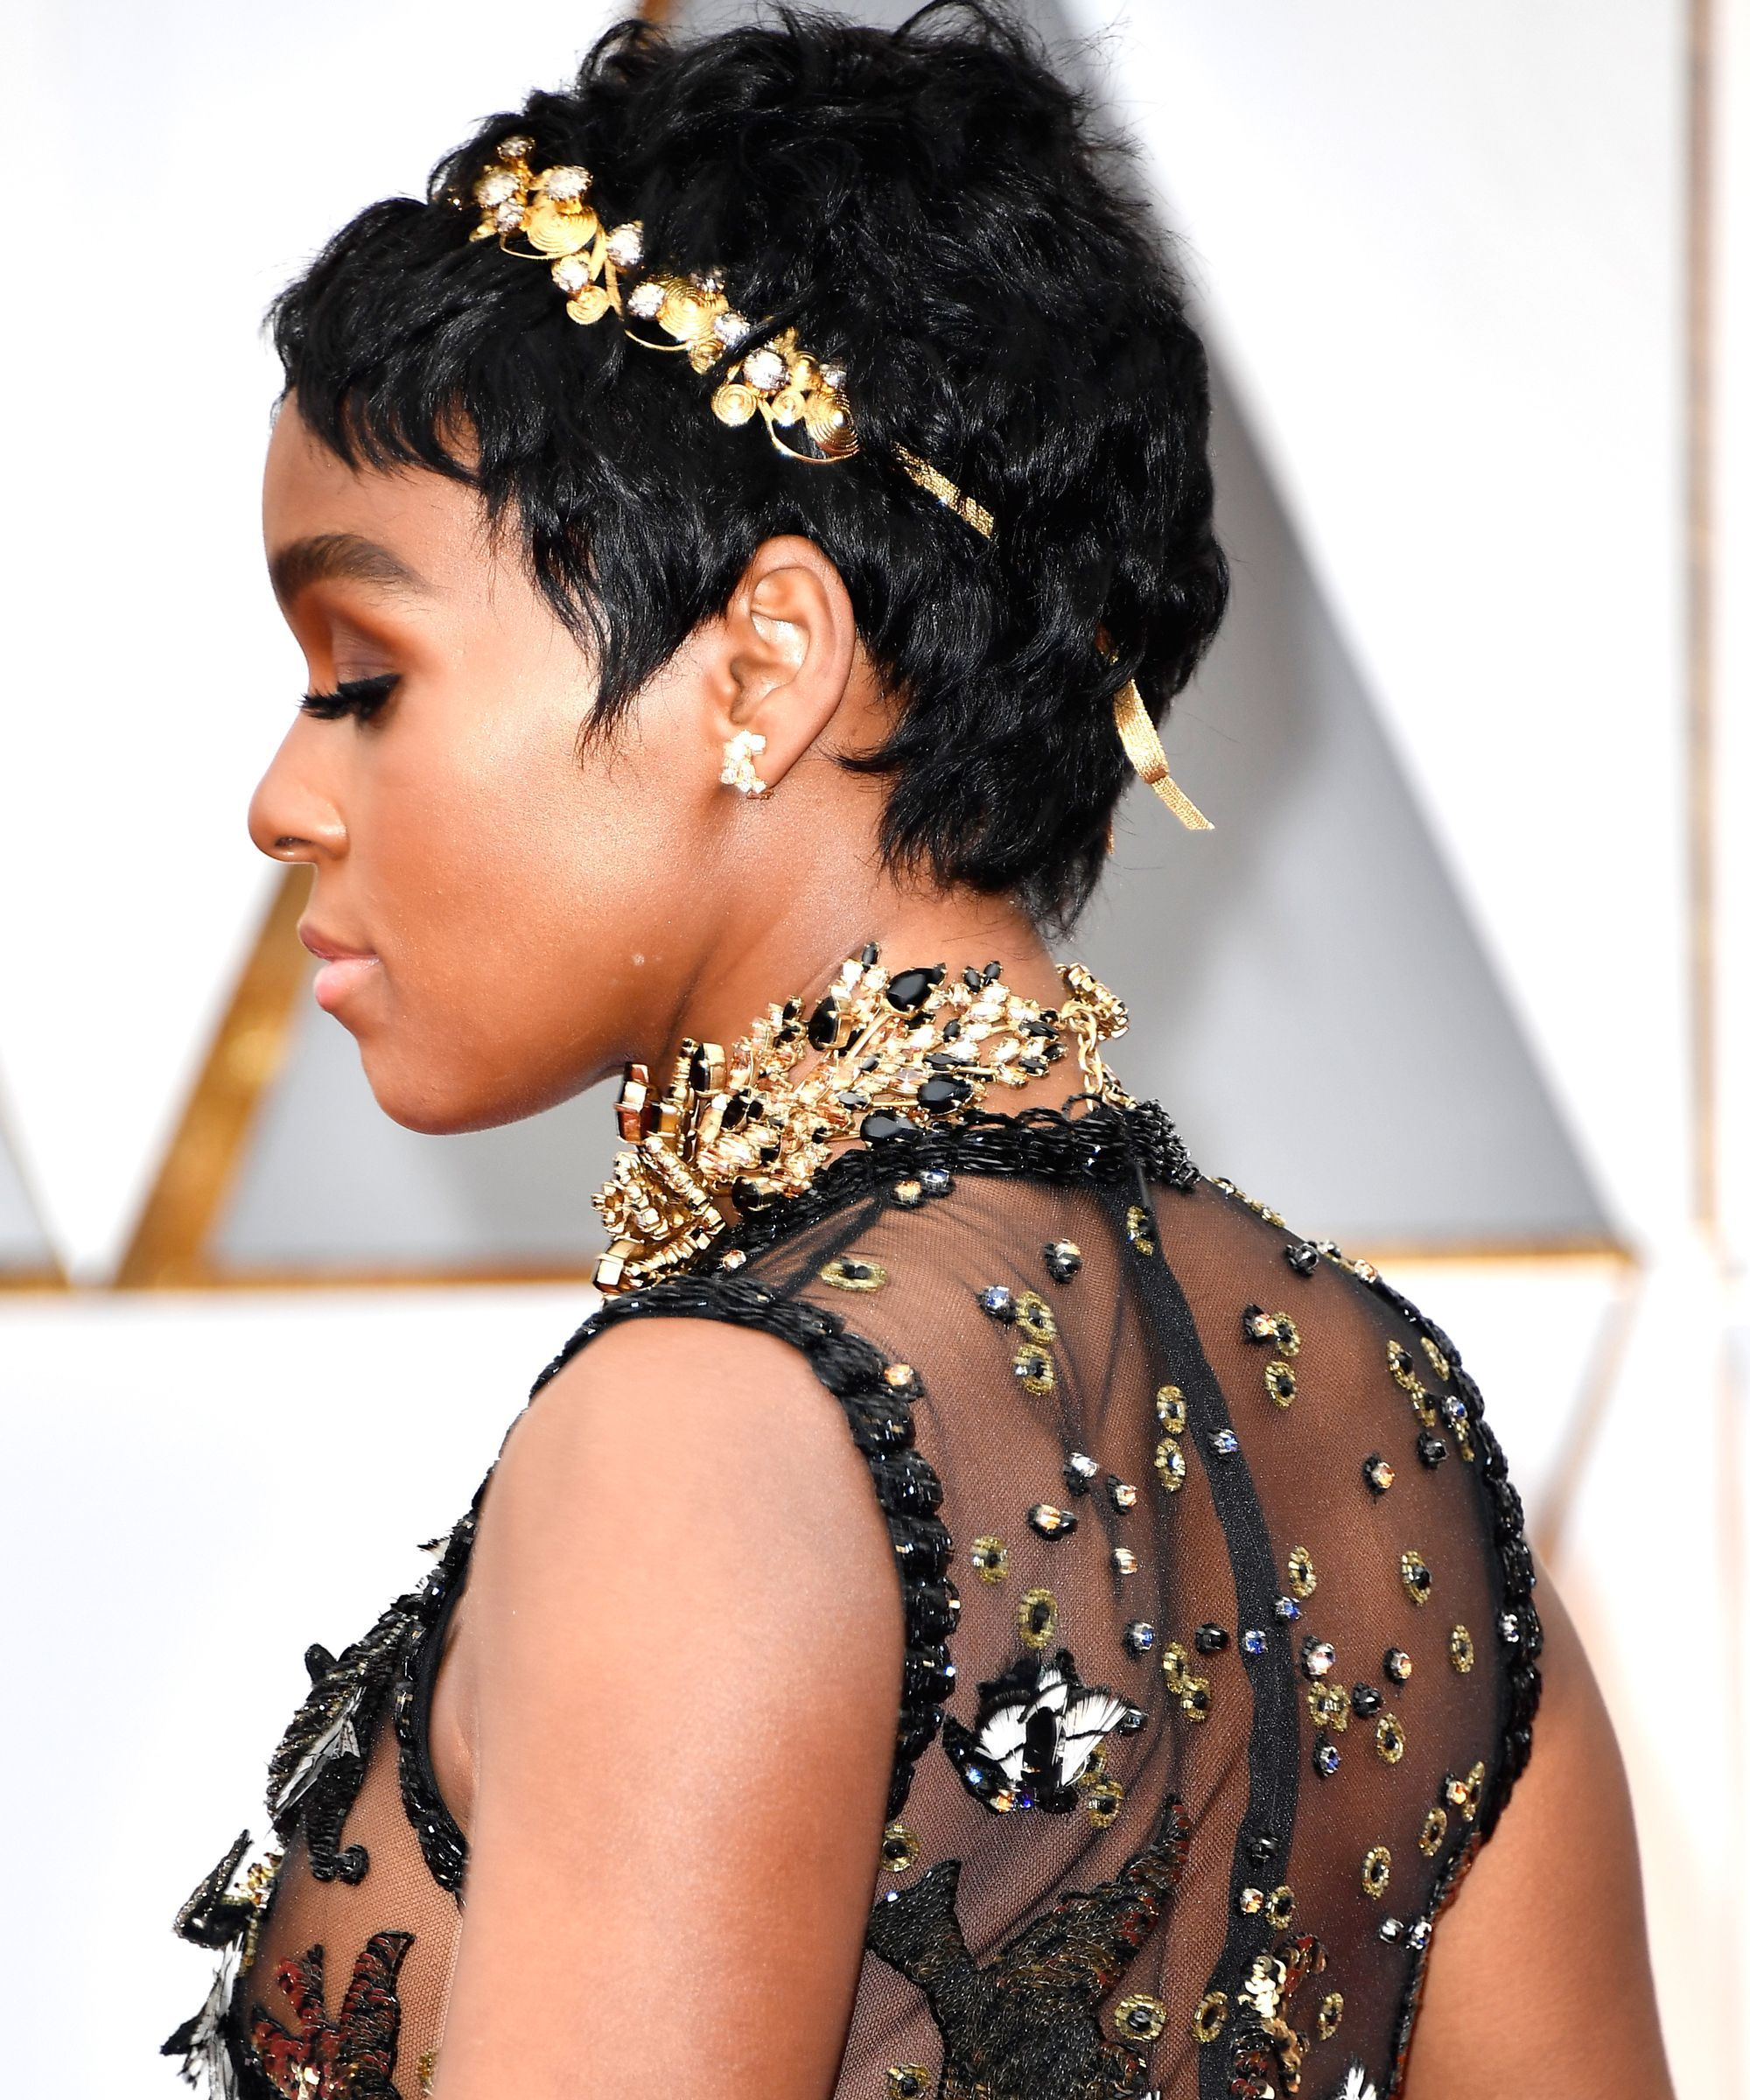 Continue to perfect pixie haircuts part 2 the traditional pixie - Janelle Mon E S New Super Short Haircut Just Won The Oscars Red Carpet